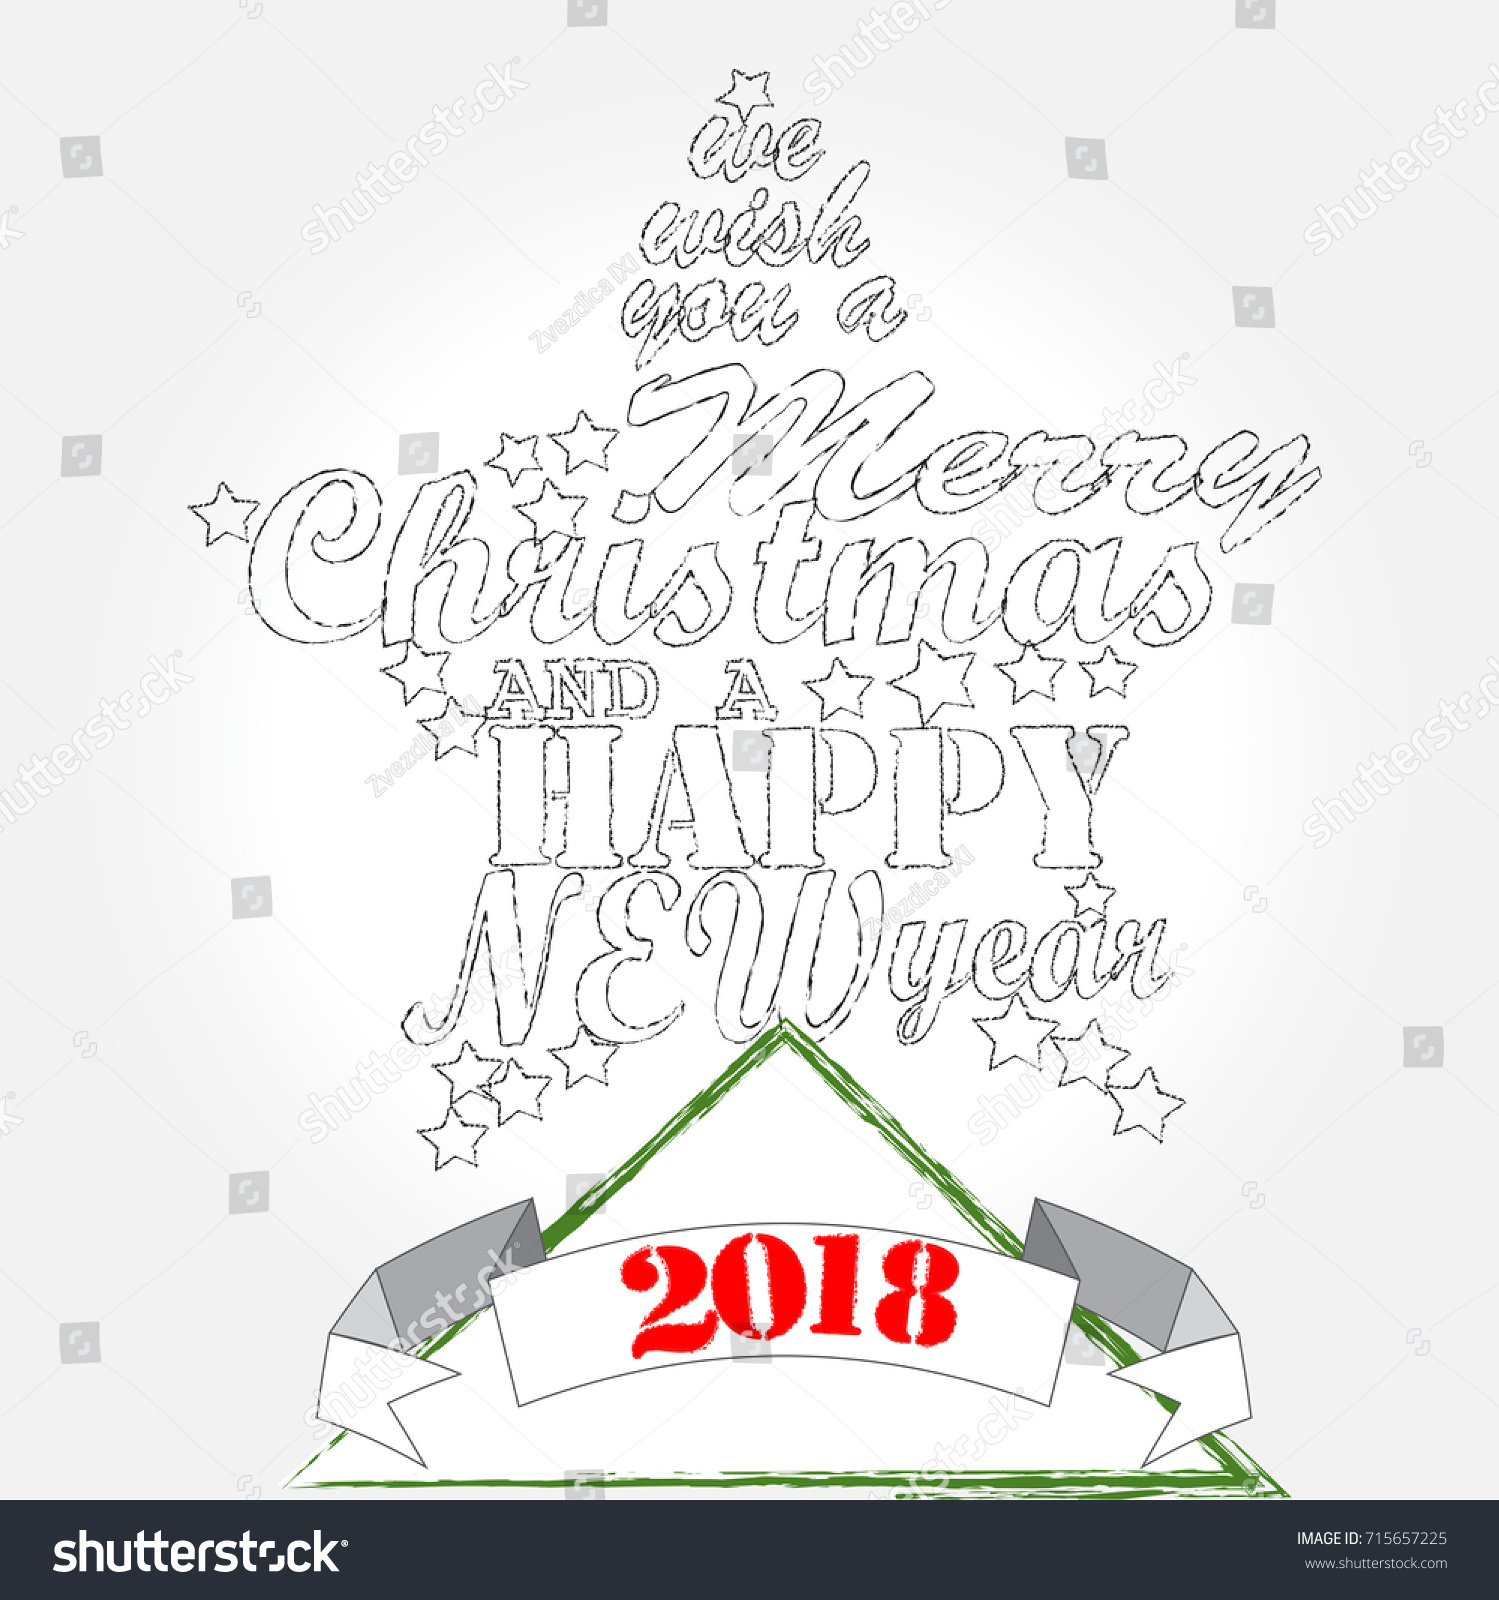 Merry Christmas Happy New Year Christmas Stock Vector Royalty Free